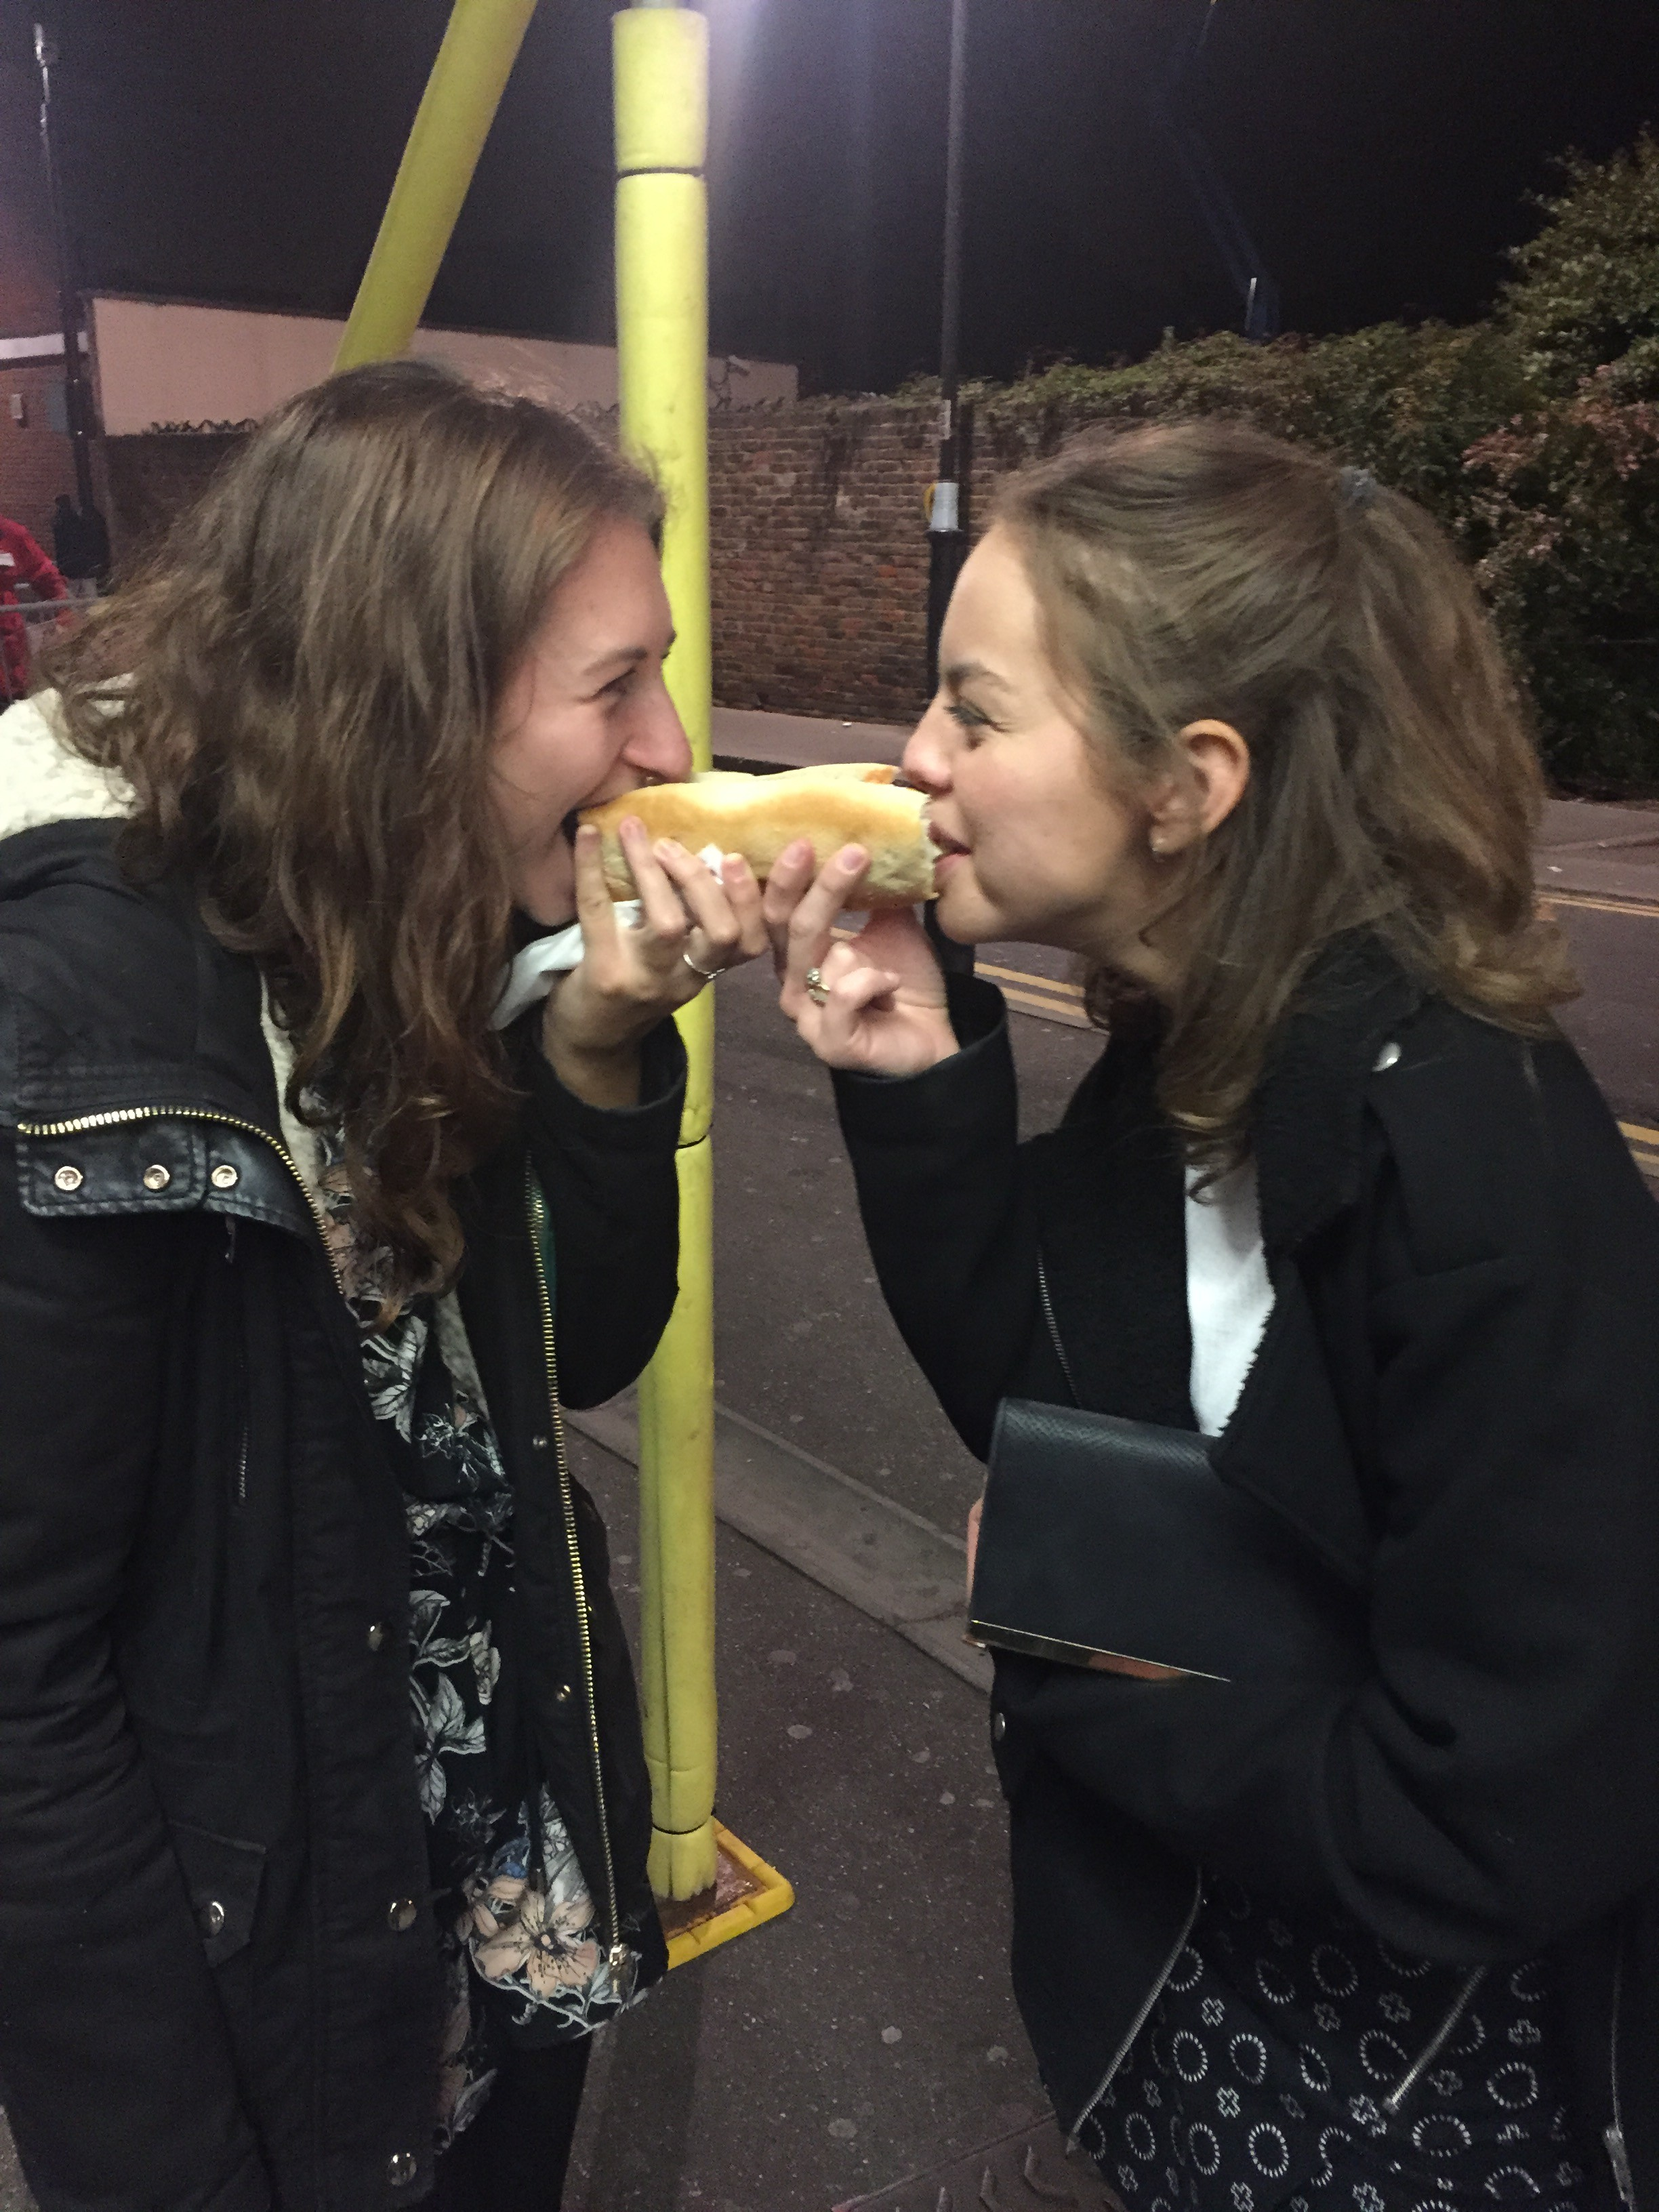 who's the lady and who's the tramp?